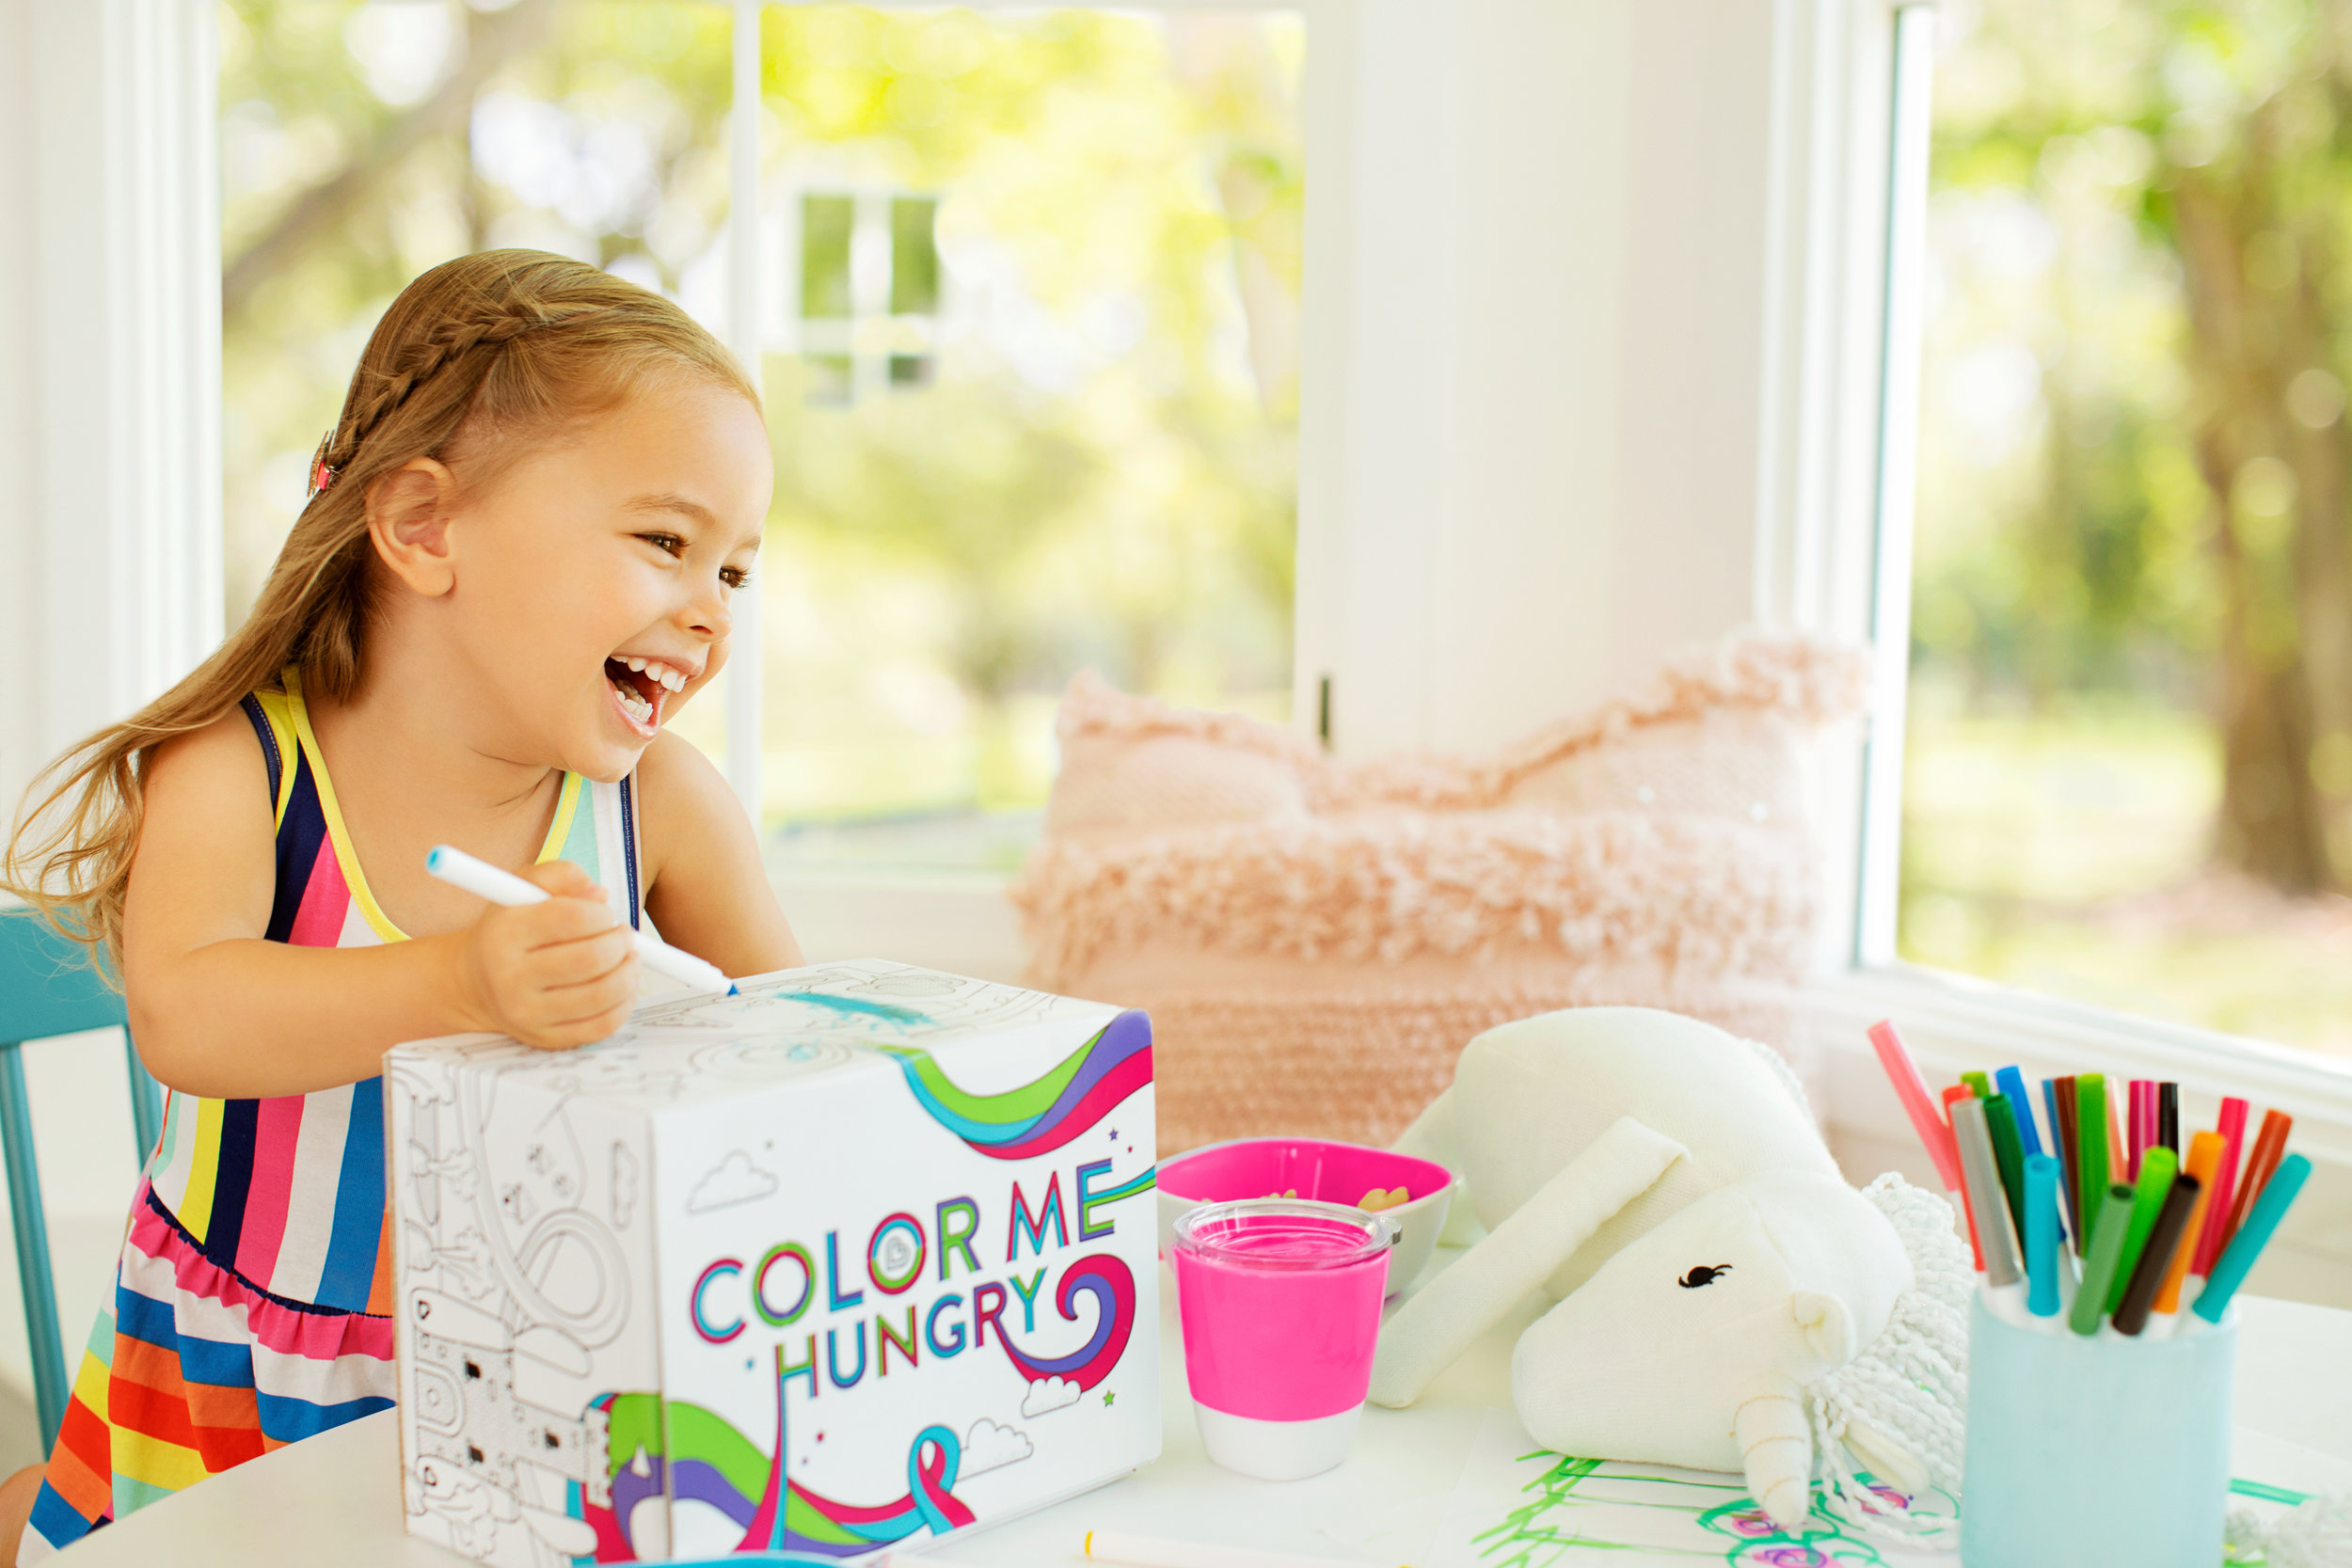 Large JPG-37287 – COLOR ME HUNGRY SPLASH GIFT BOX_240_RT_PNK.jpg